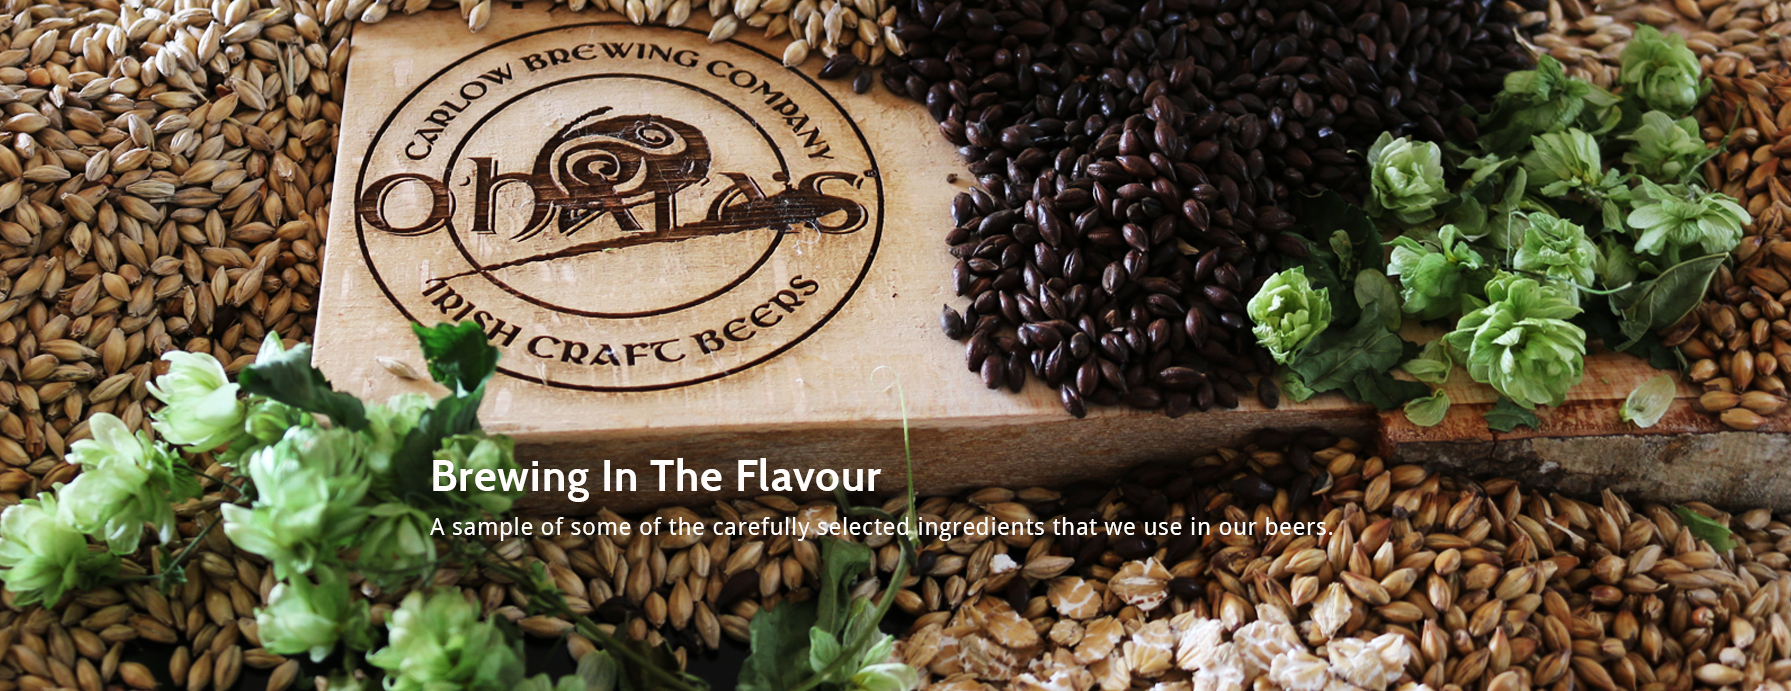 New-Brewing-in-the-Flavour-Slider3